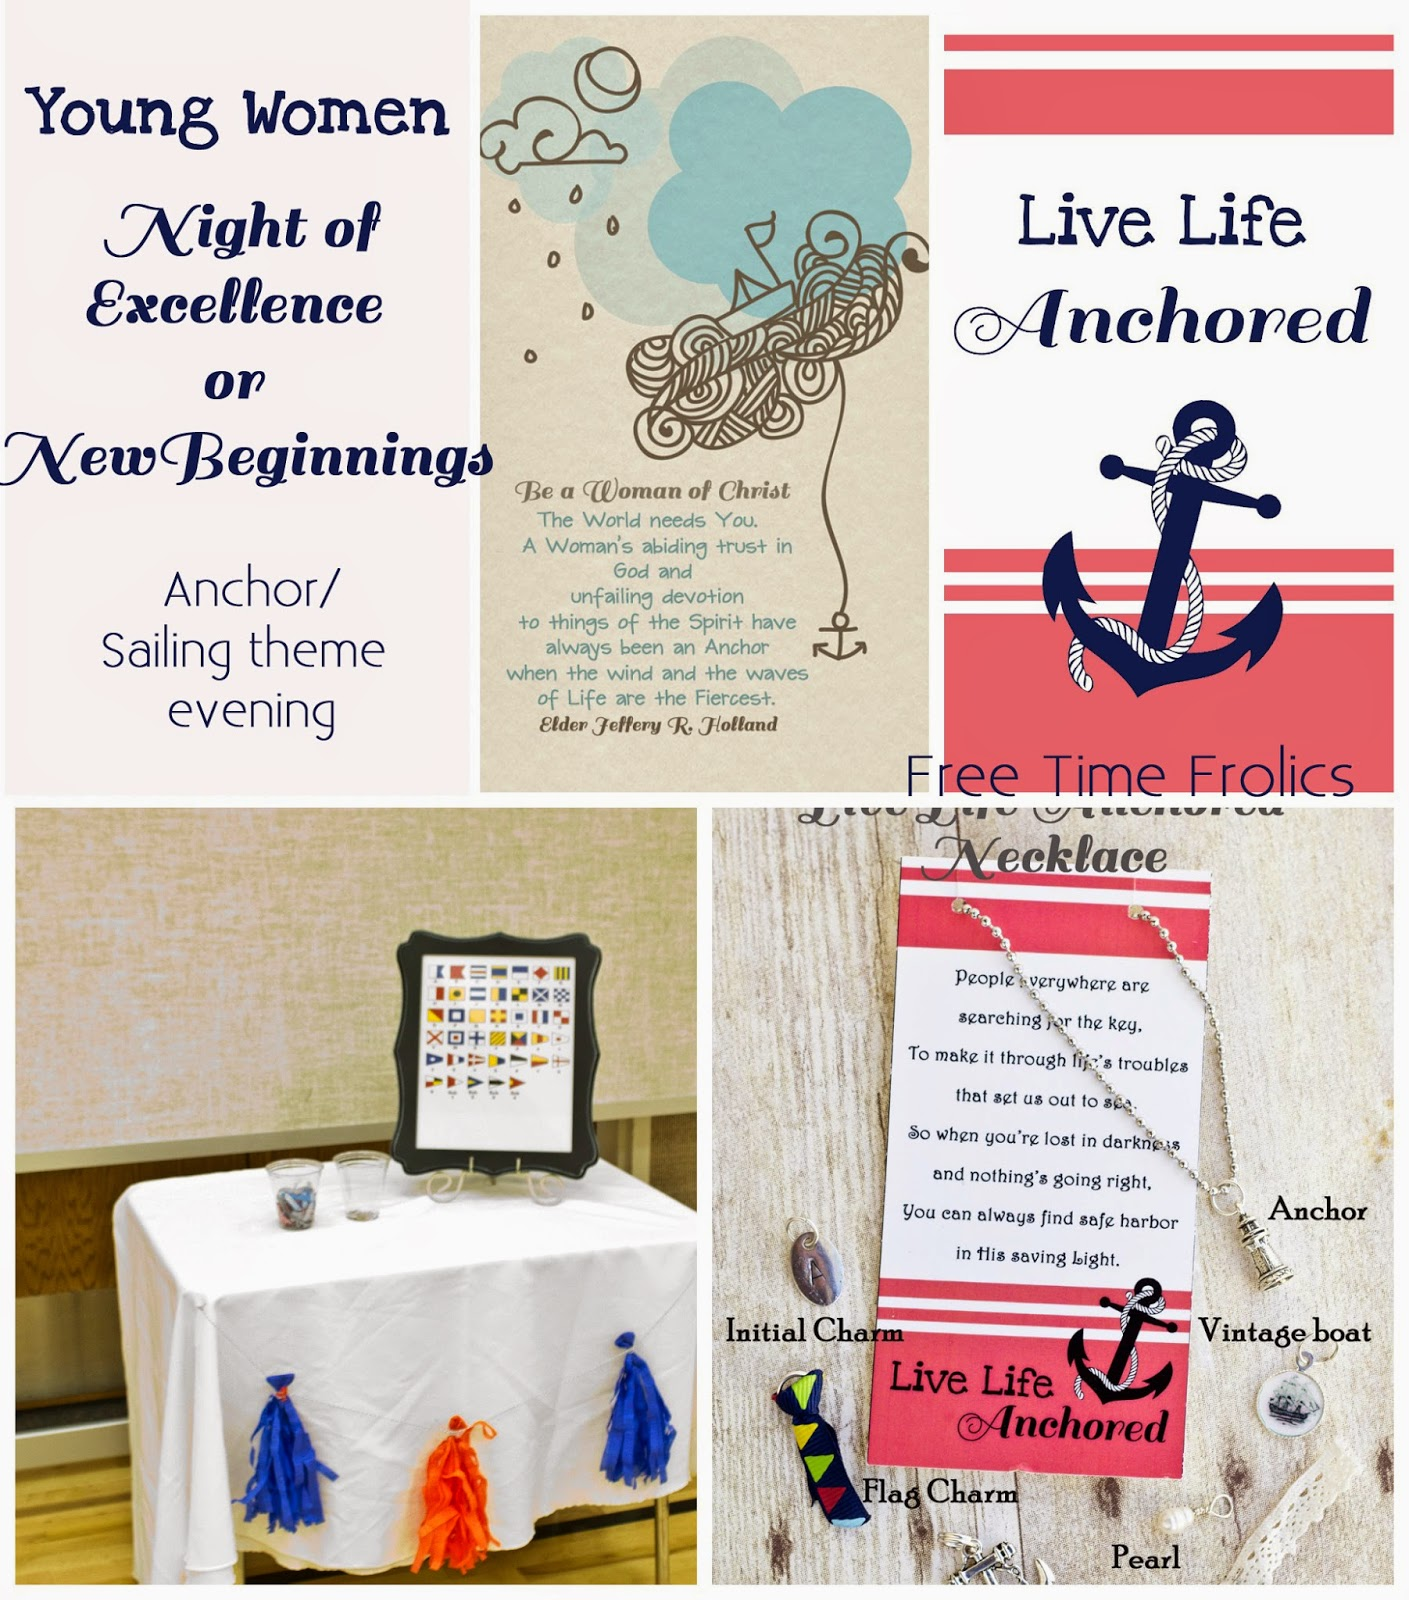 Live Life Anchored Night of Excellence